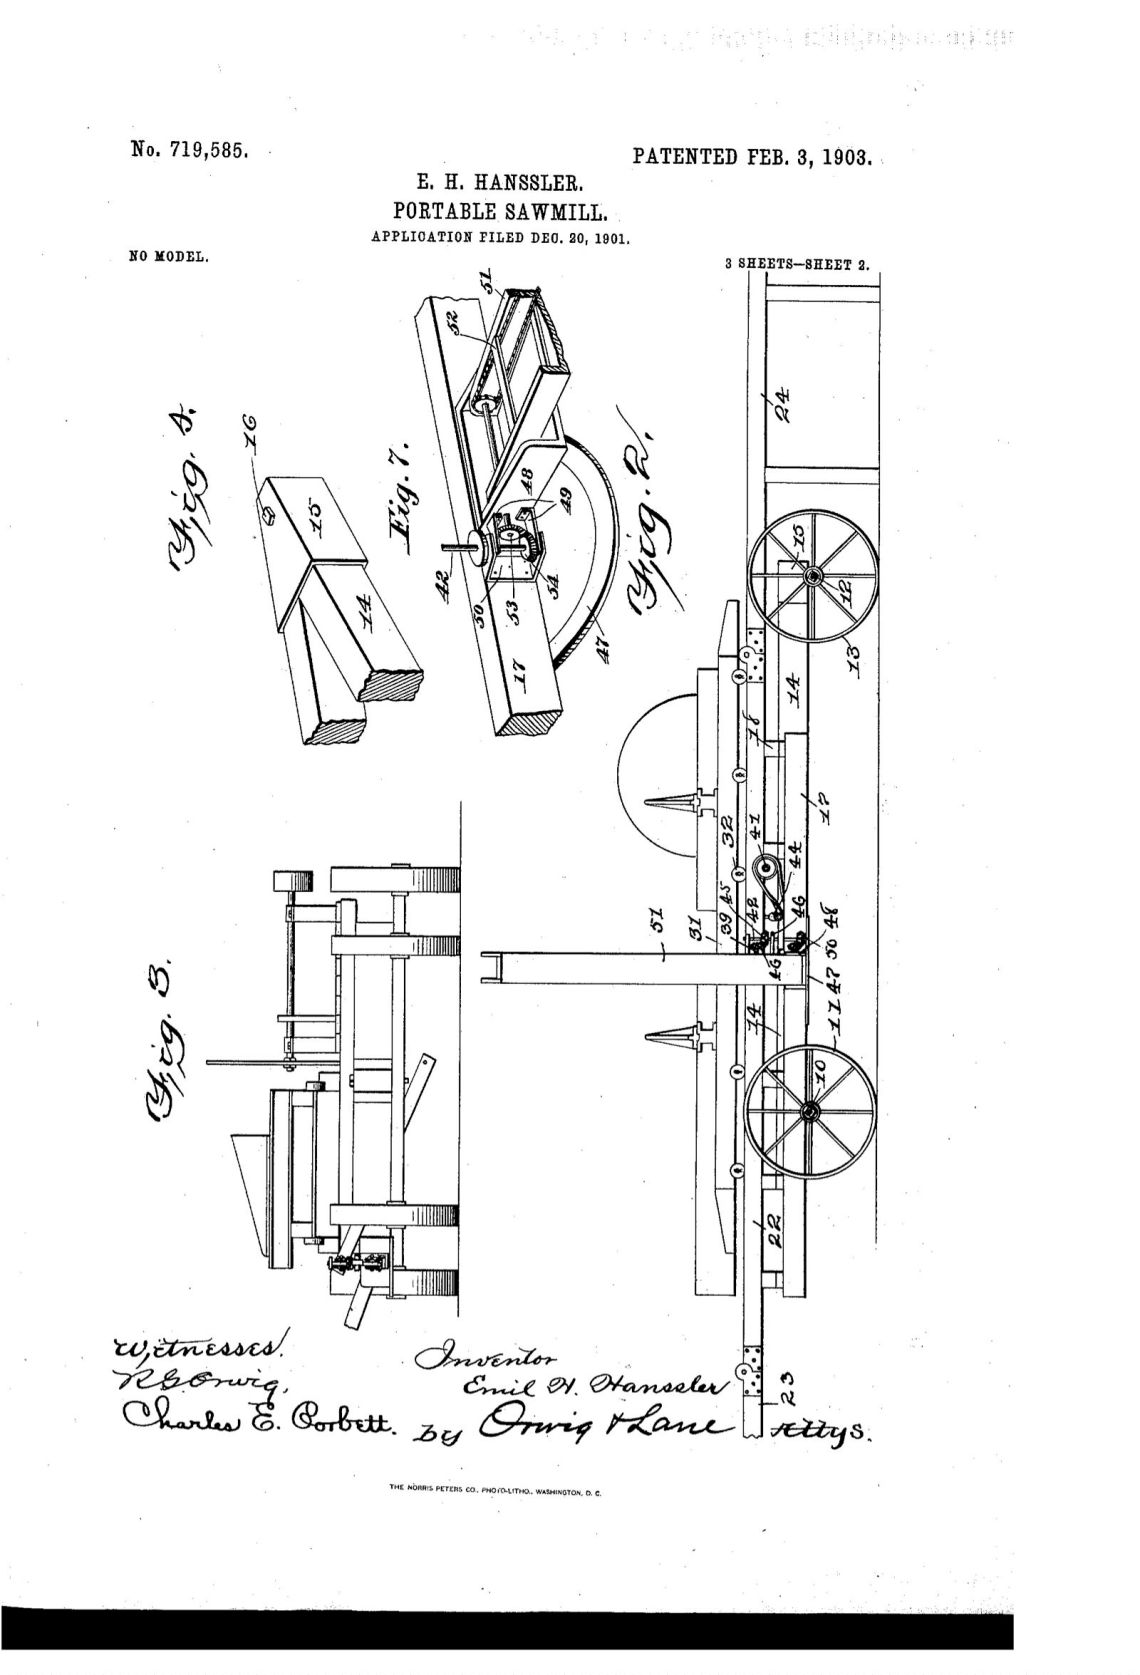 02-03-1903 patent 719585 EH Hanssler portable saw mill pg 1 of 6